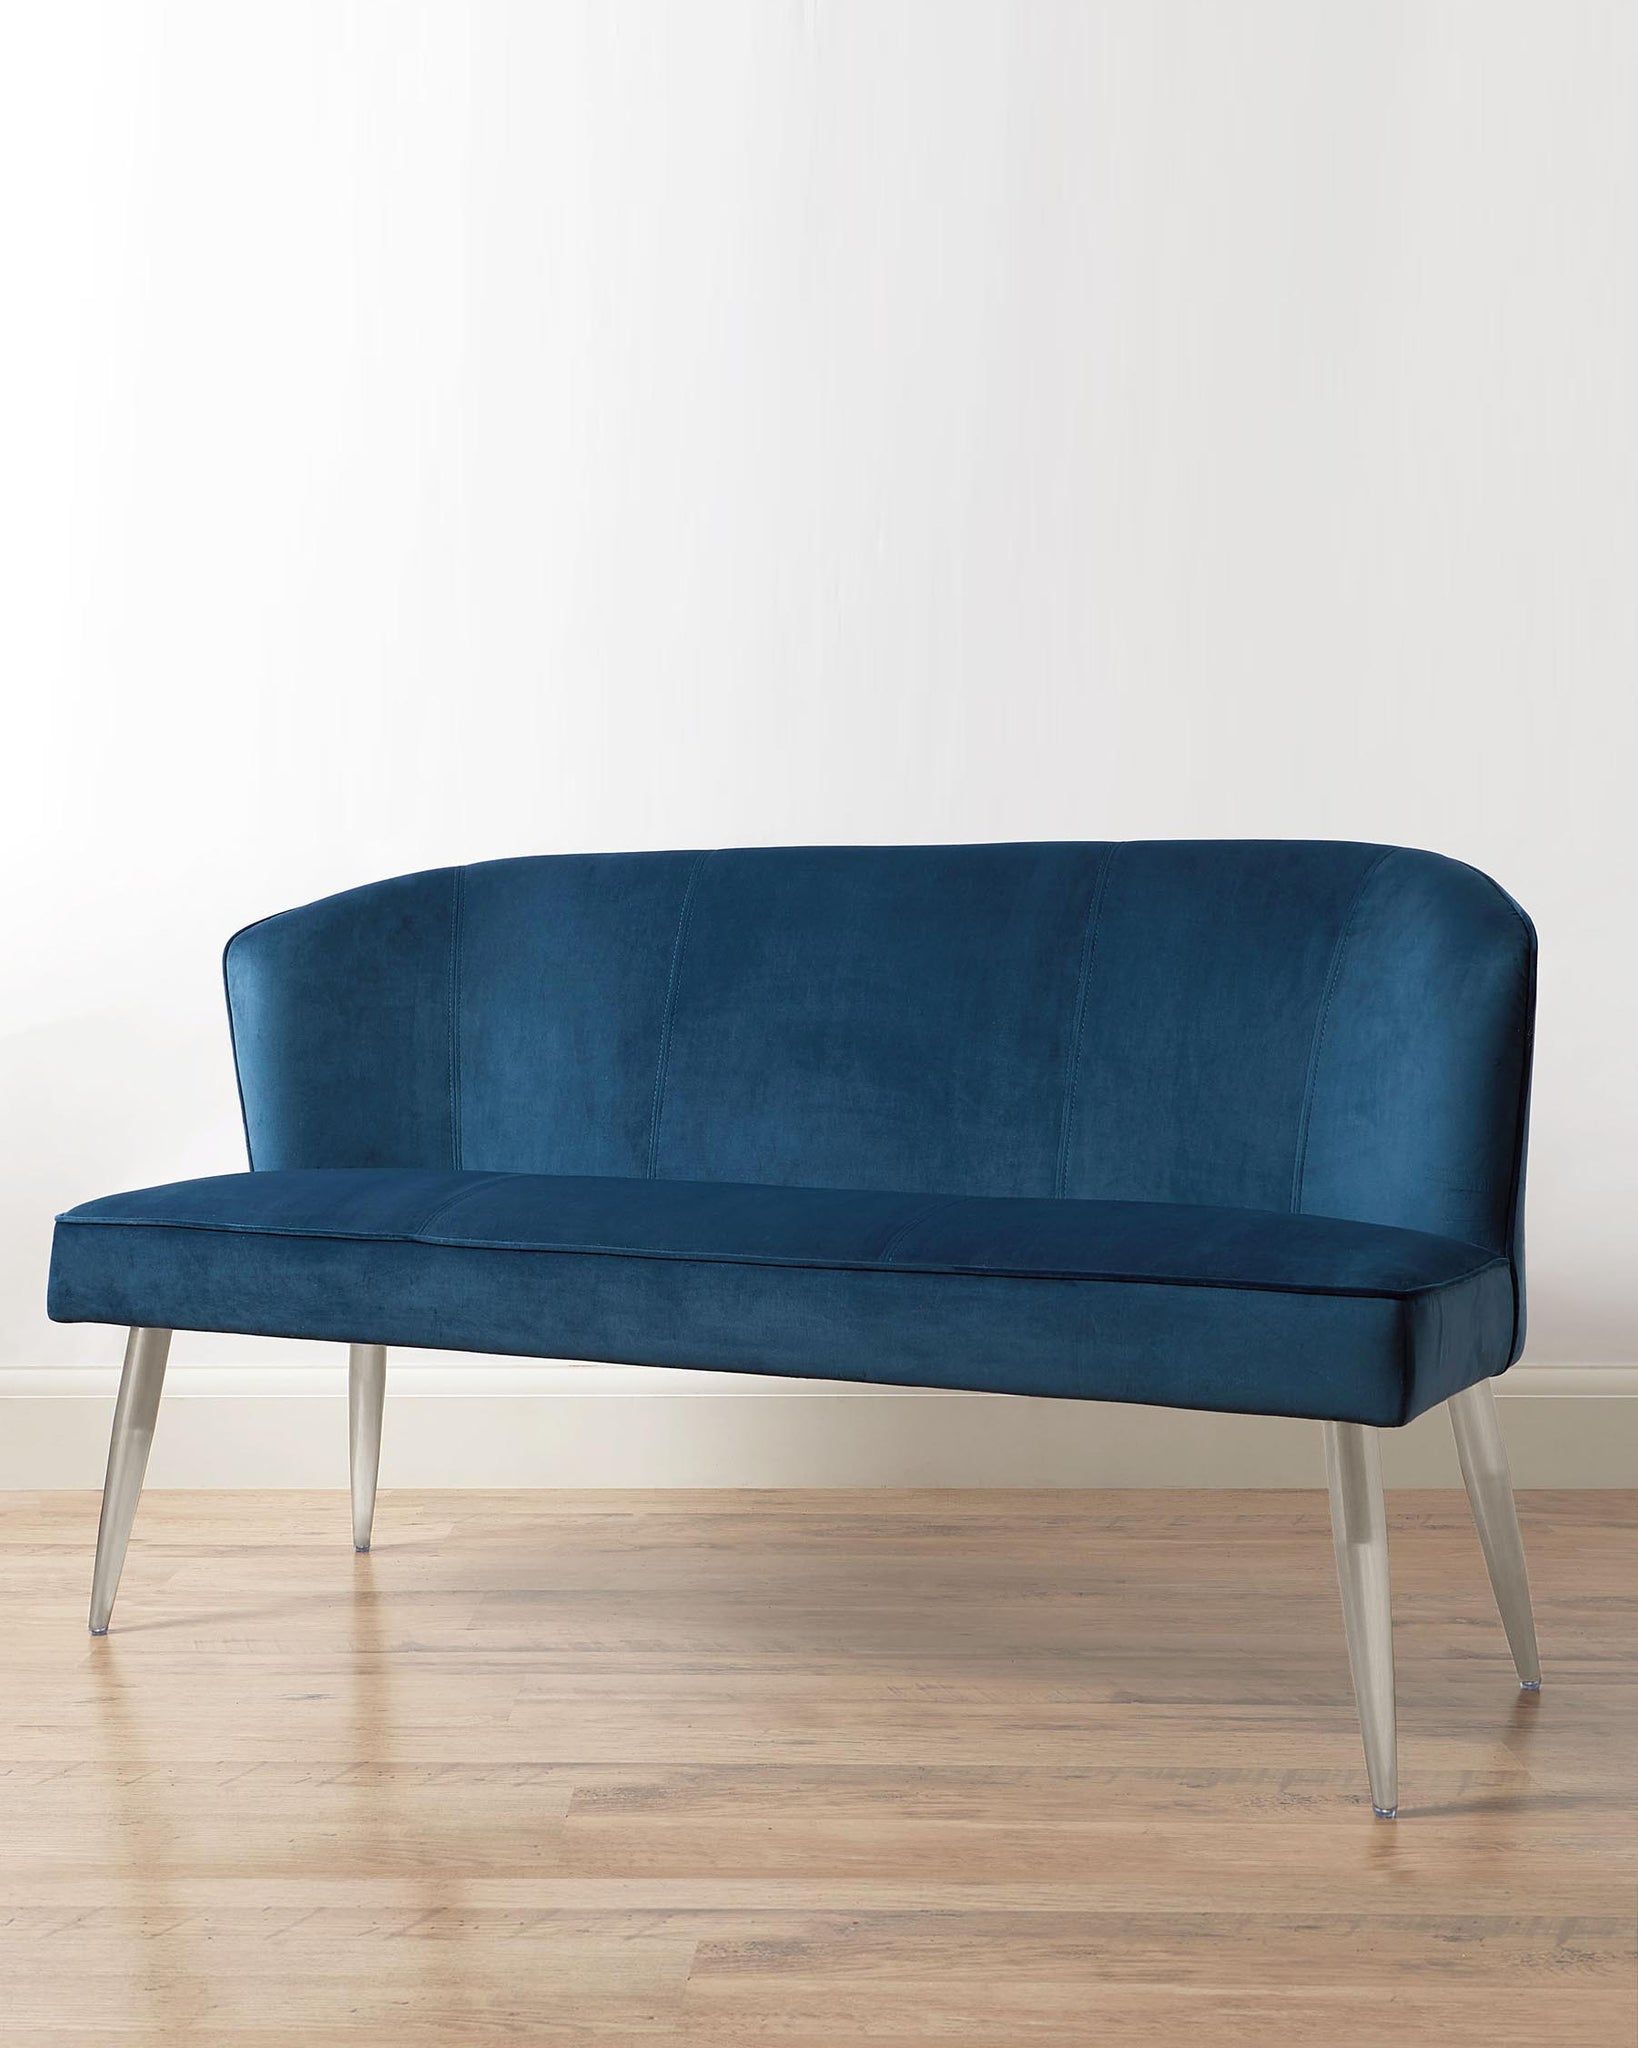 Mellow Dark Blue Velvet 3 Seater Bench With Backrest